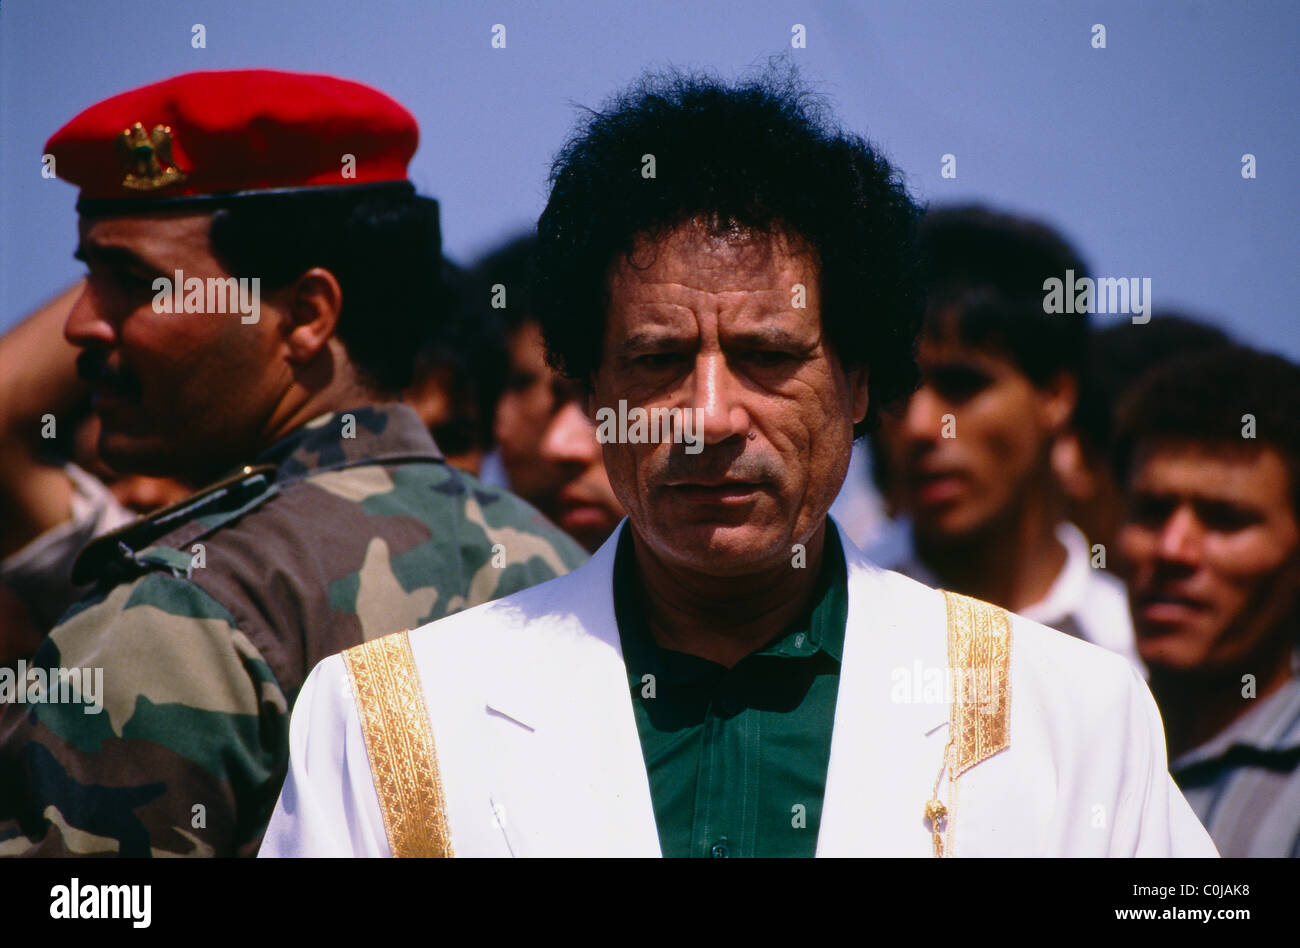 Libyan President Muammar Gaddhafi during the celebrations marking his 20th anniversary in power. - Stock Image